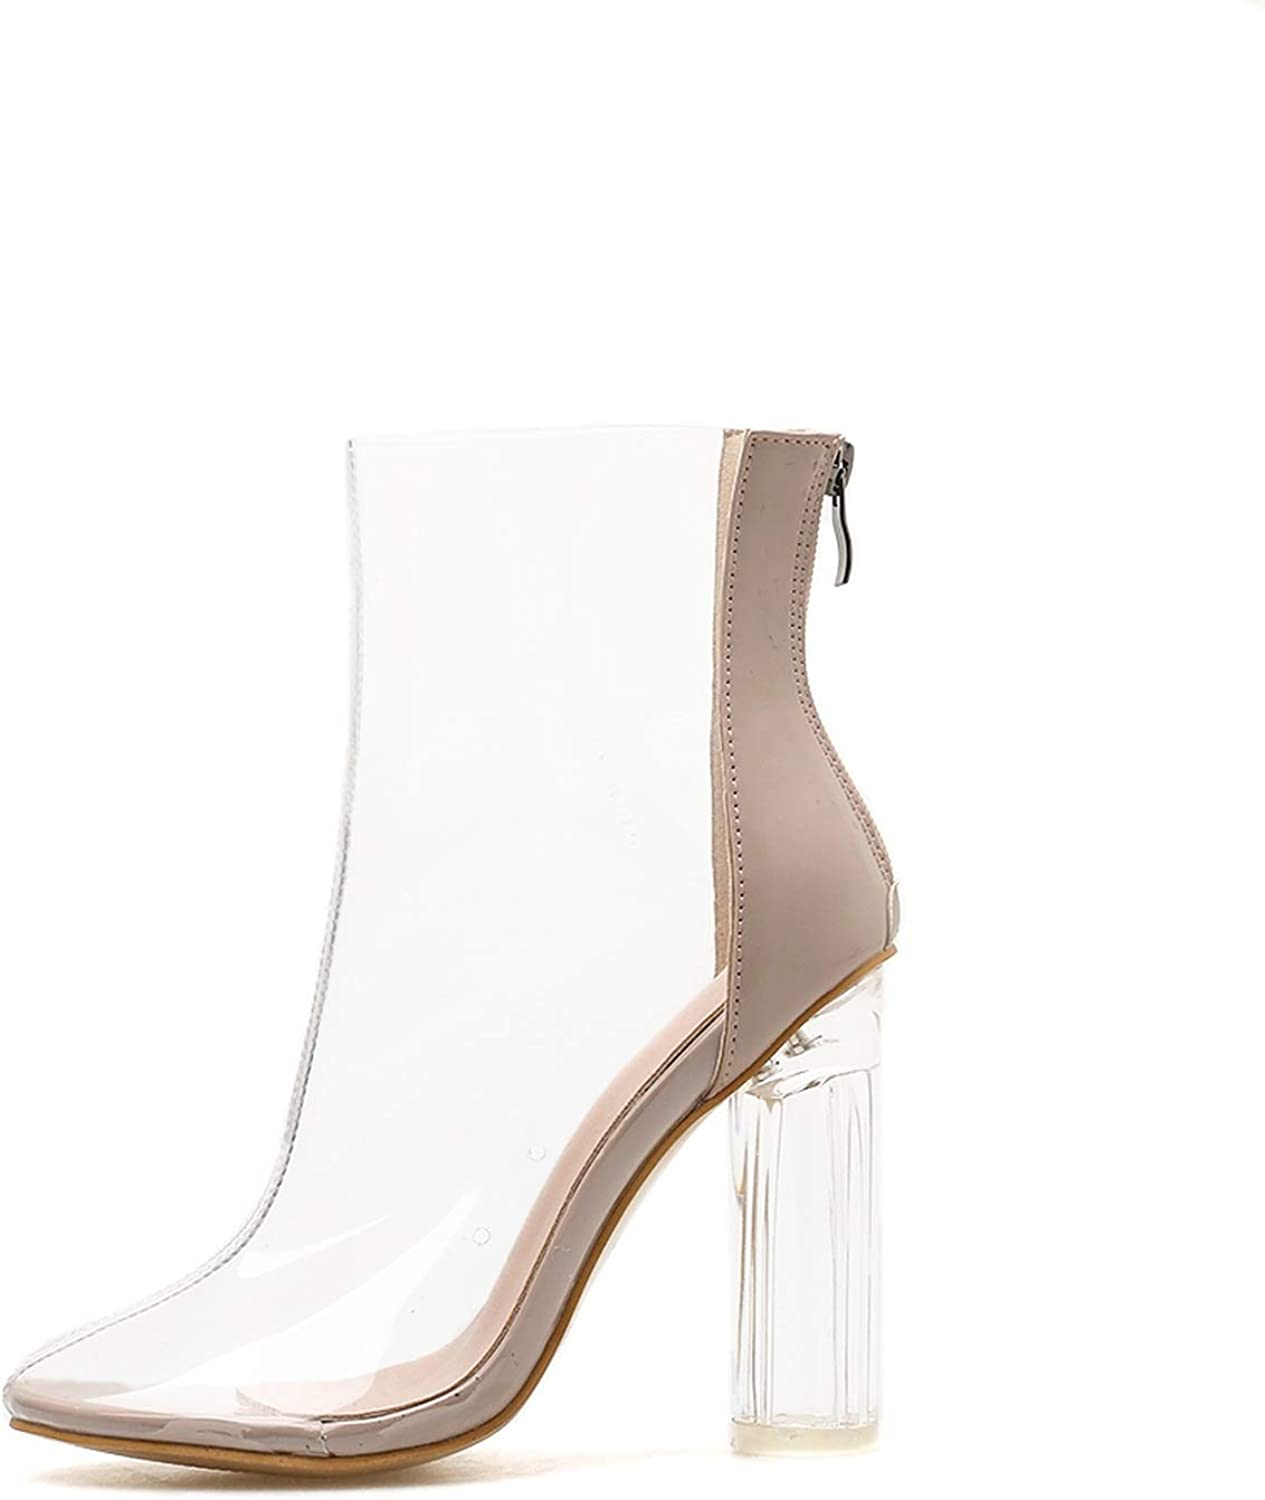 Plus Size Transparent Boots Chunky High Heels Sandals Round Toe Crystal Heel Princess Boots shoes